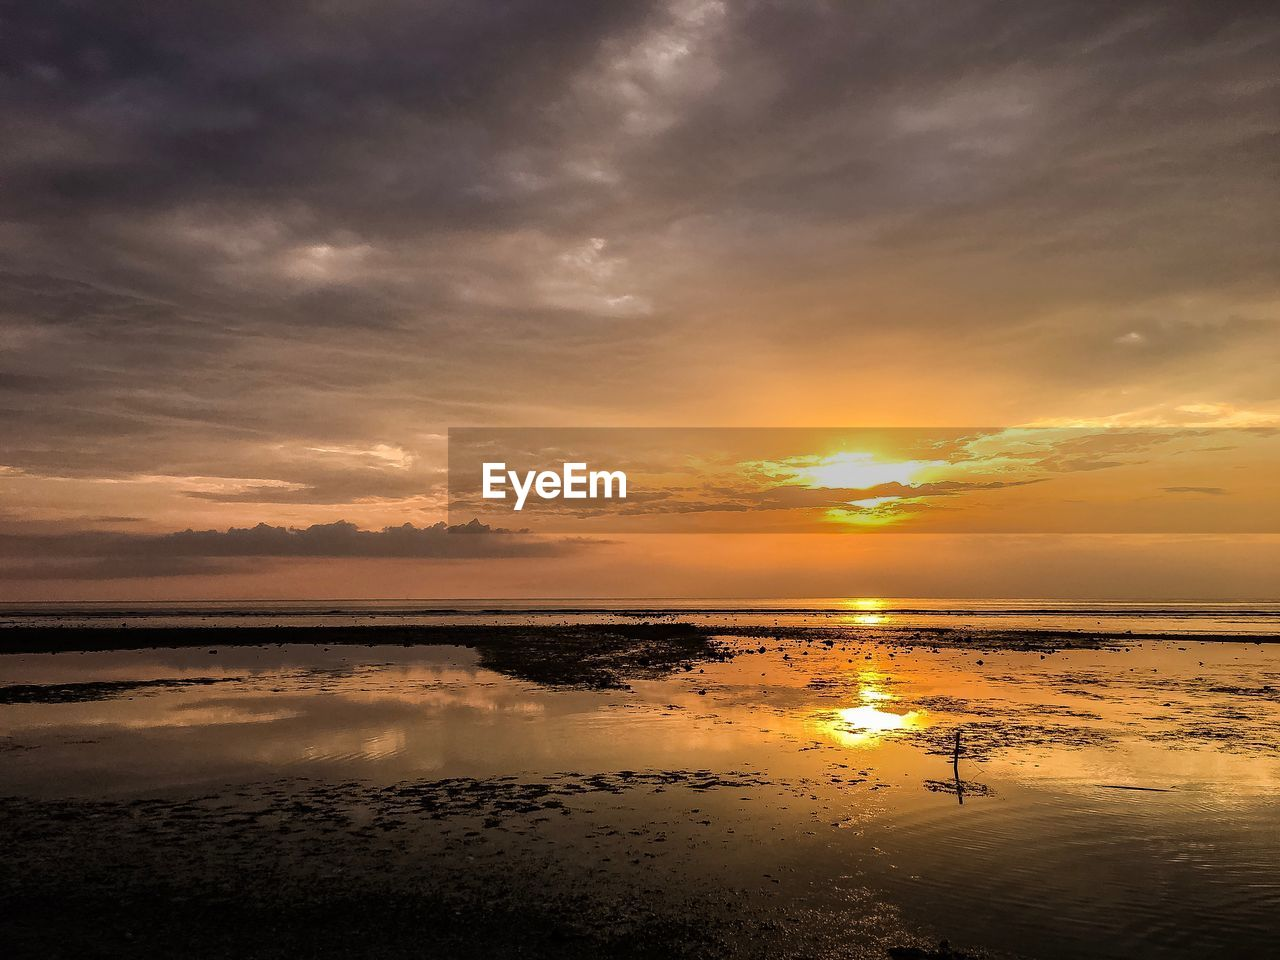 sunset, reflection, beauty in nature, scenics, water, tranquility, nature, tranquil scene, sky, beach, cloud - sky, sea, no people, sun, outdoors